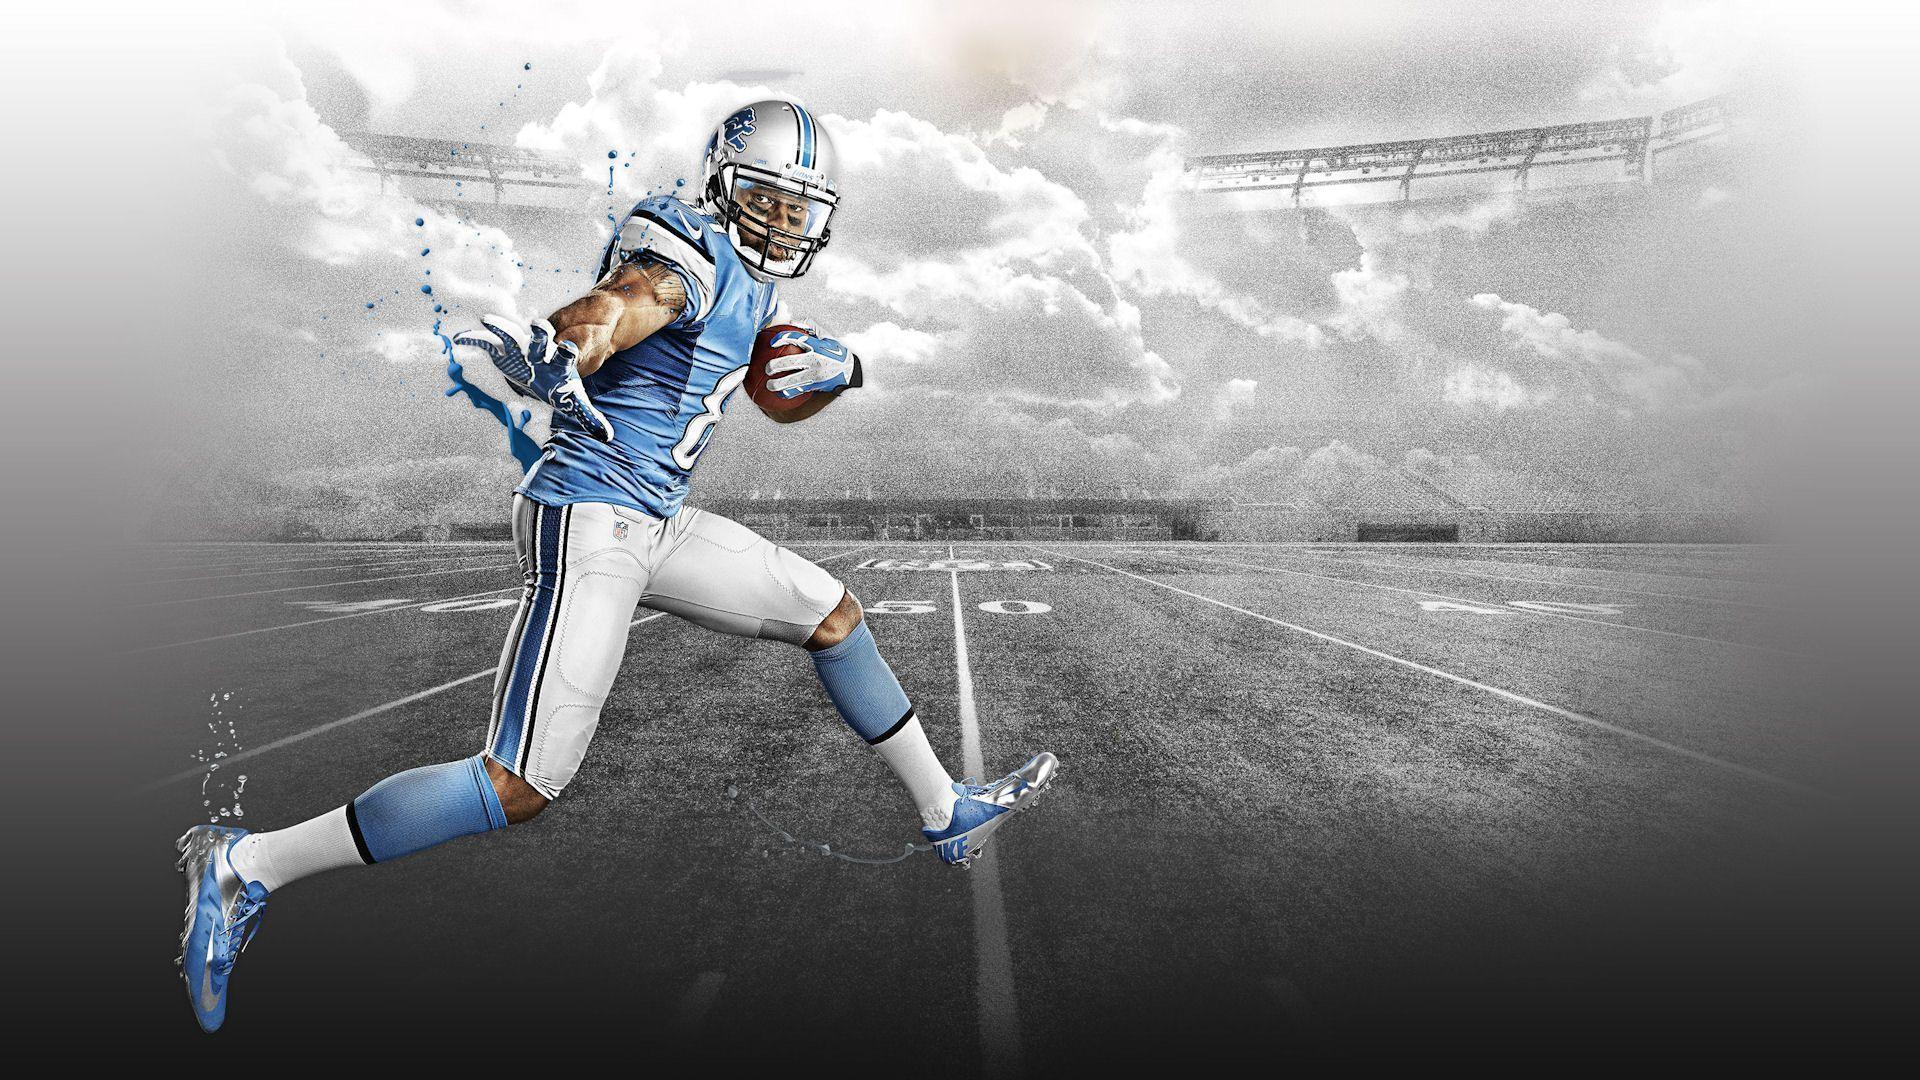 Madden NFL 13 Wallpapers